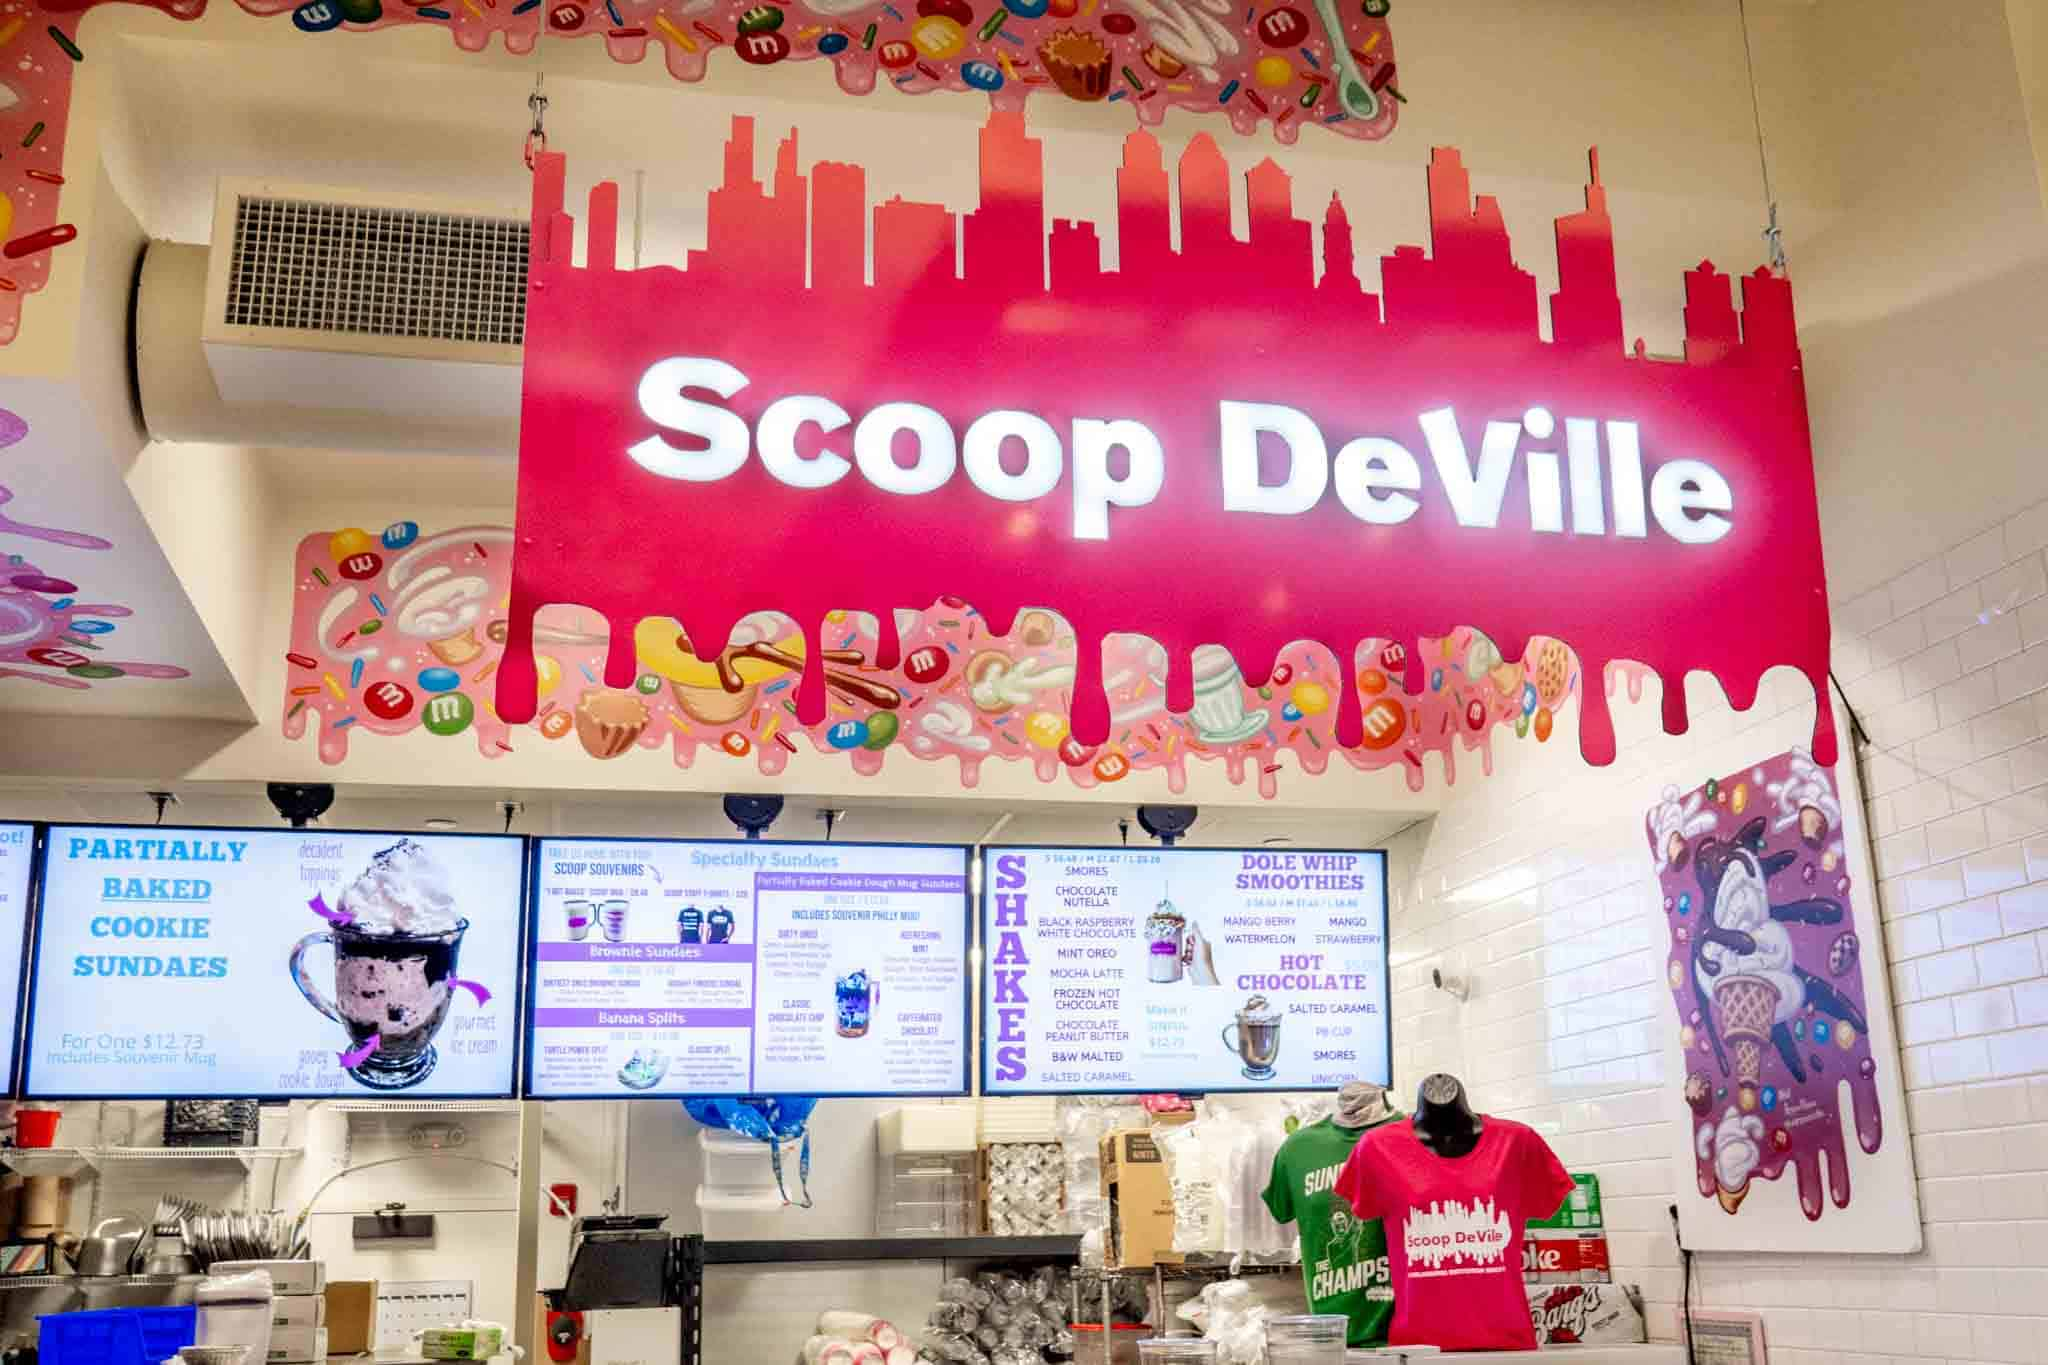 Scoop DeVille food stand with signage and posted menus